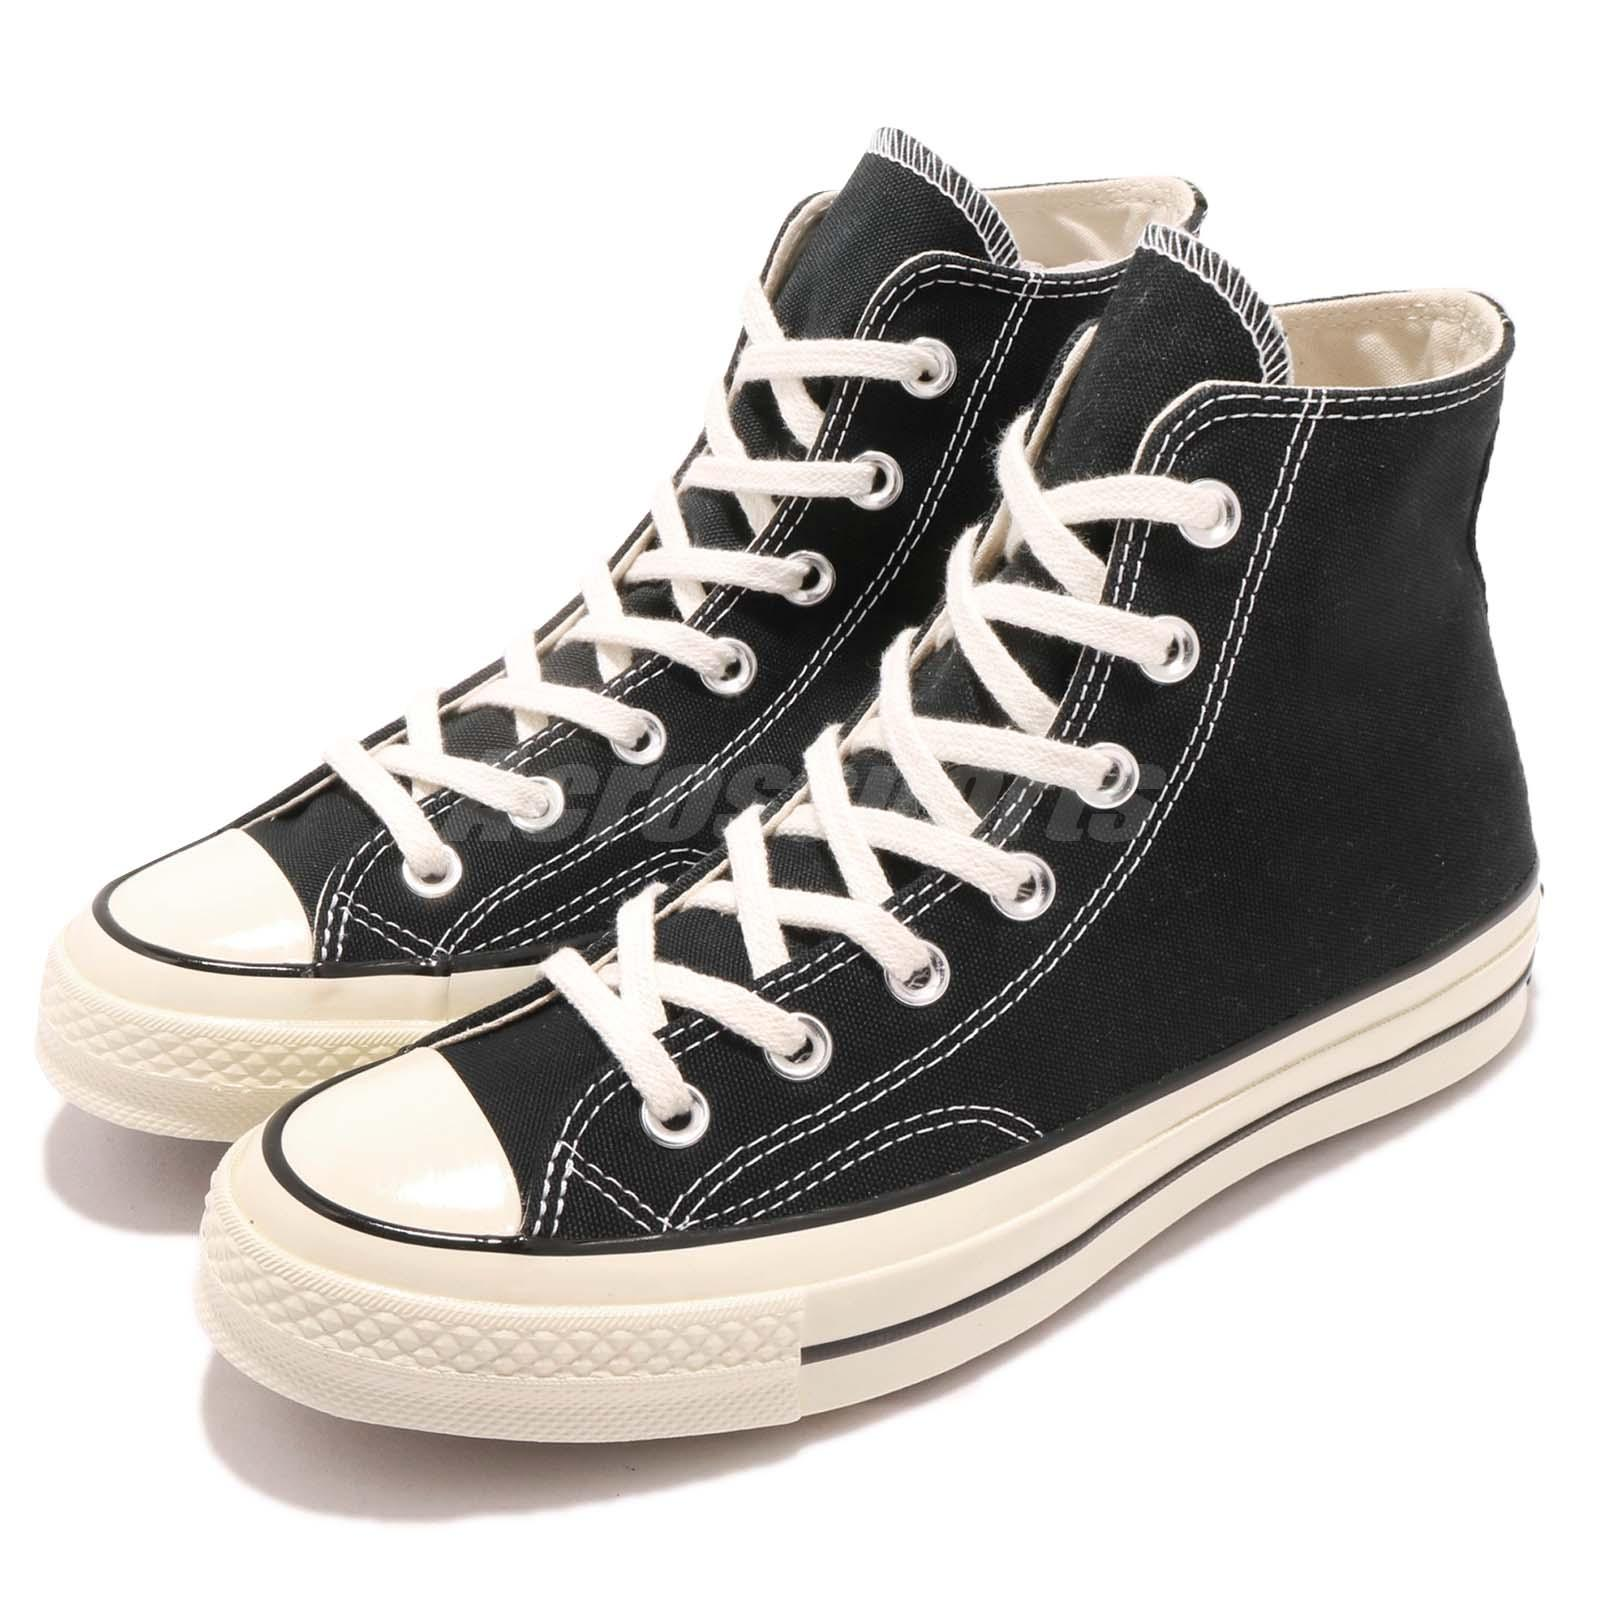 e9a8dedac937 Details about converse first string chuck taylor hi black canvas men women  jpg 1600x1600 First string